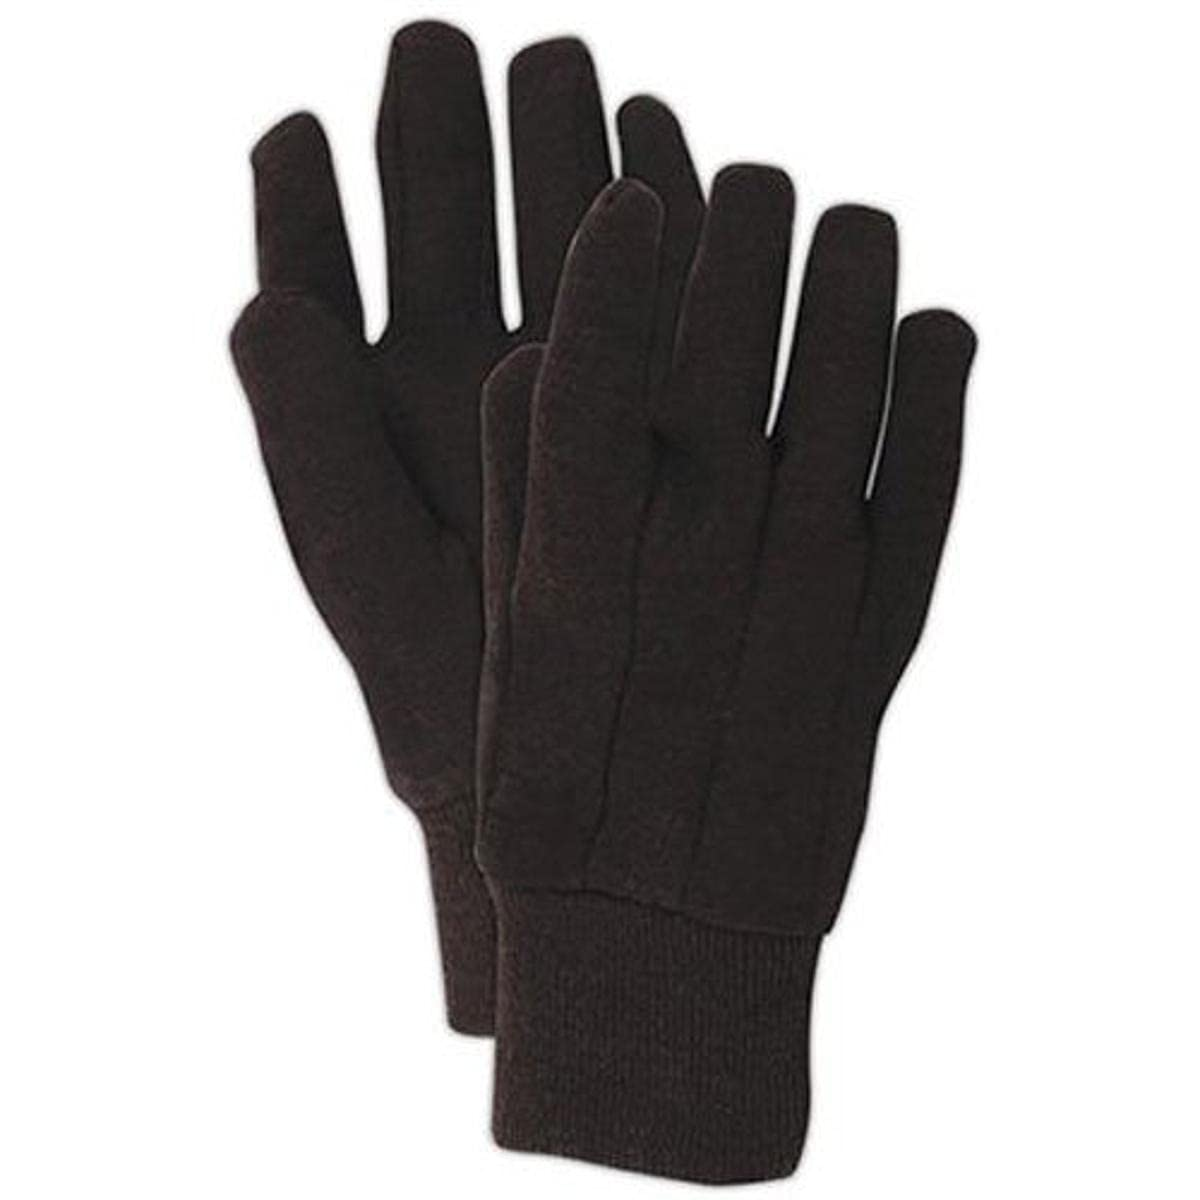 Magid Max 46% OFF Glove and Safety Brown Import Jersey Size of One Pack 3